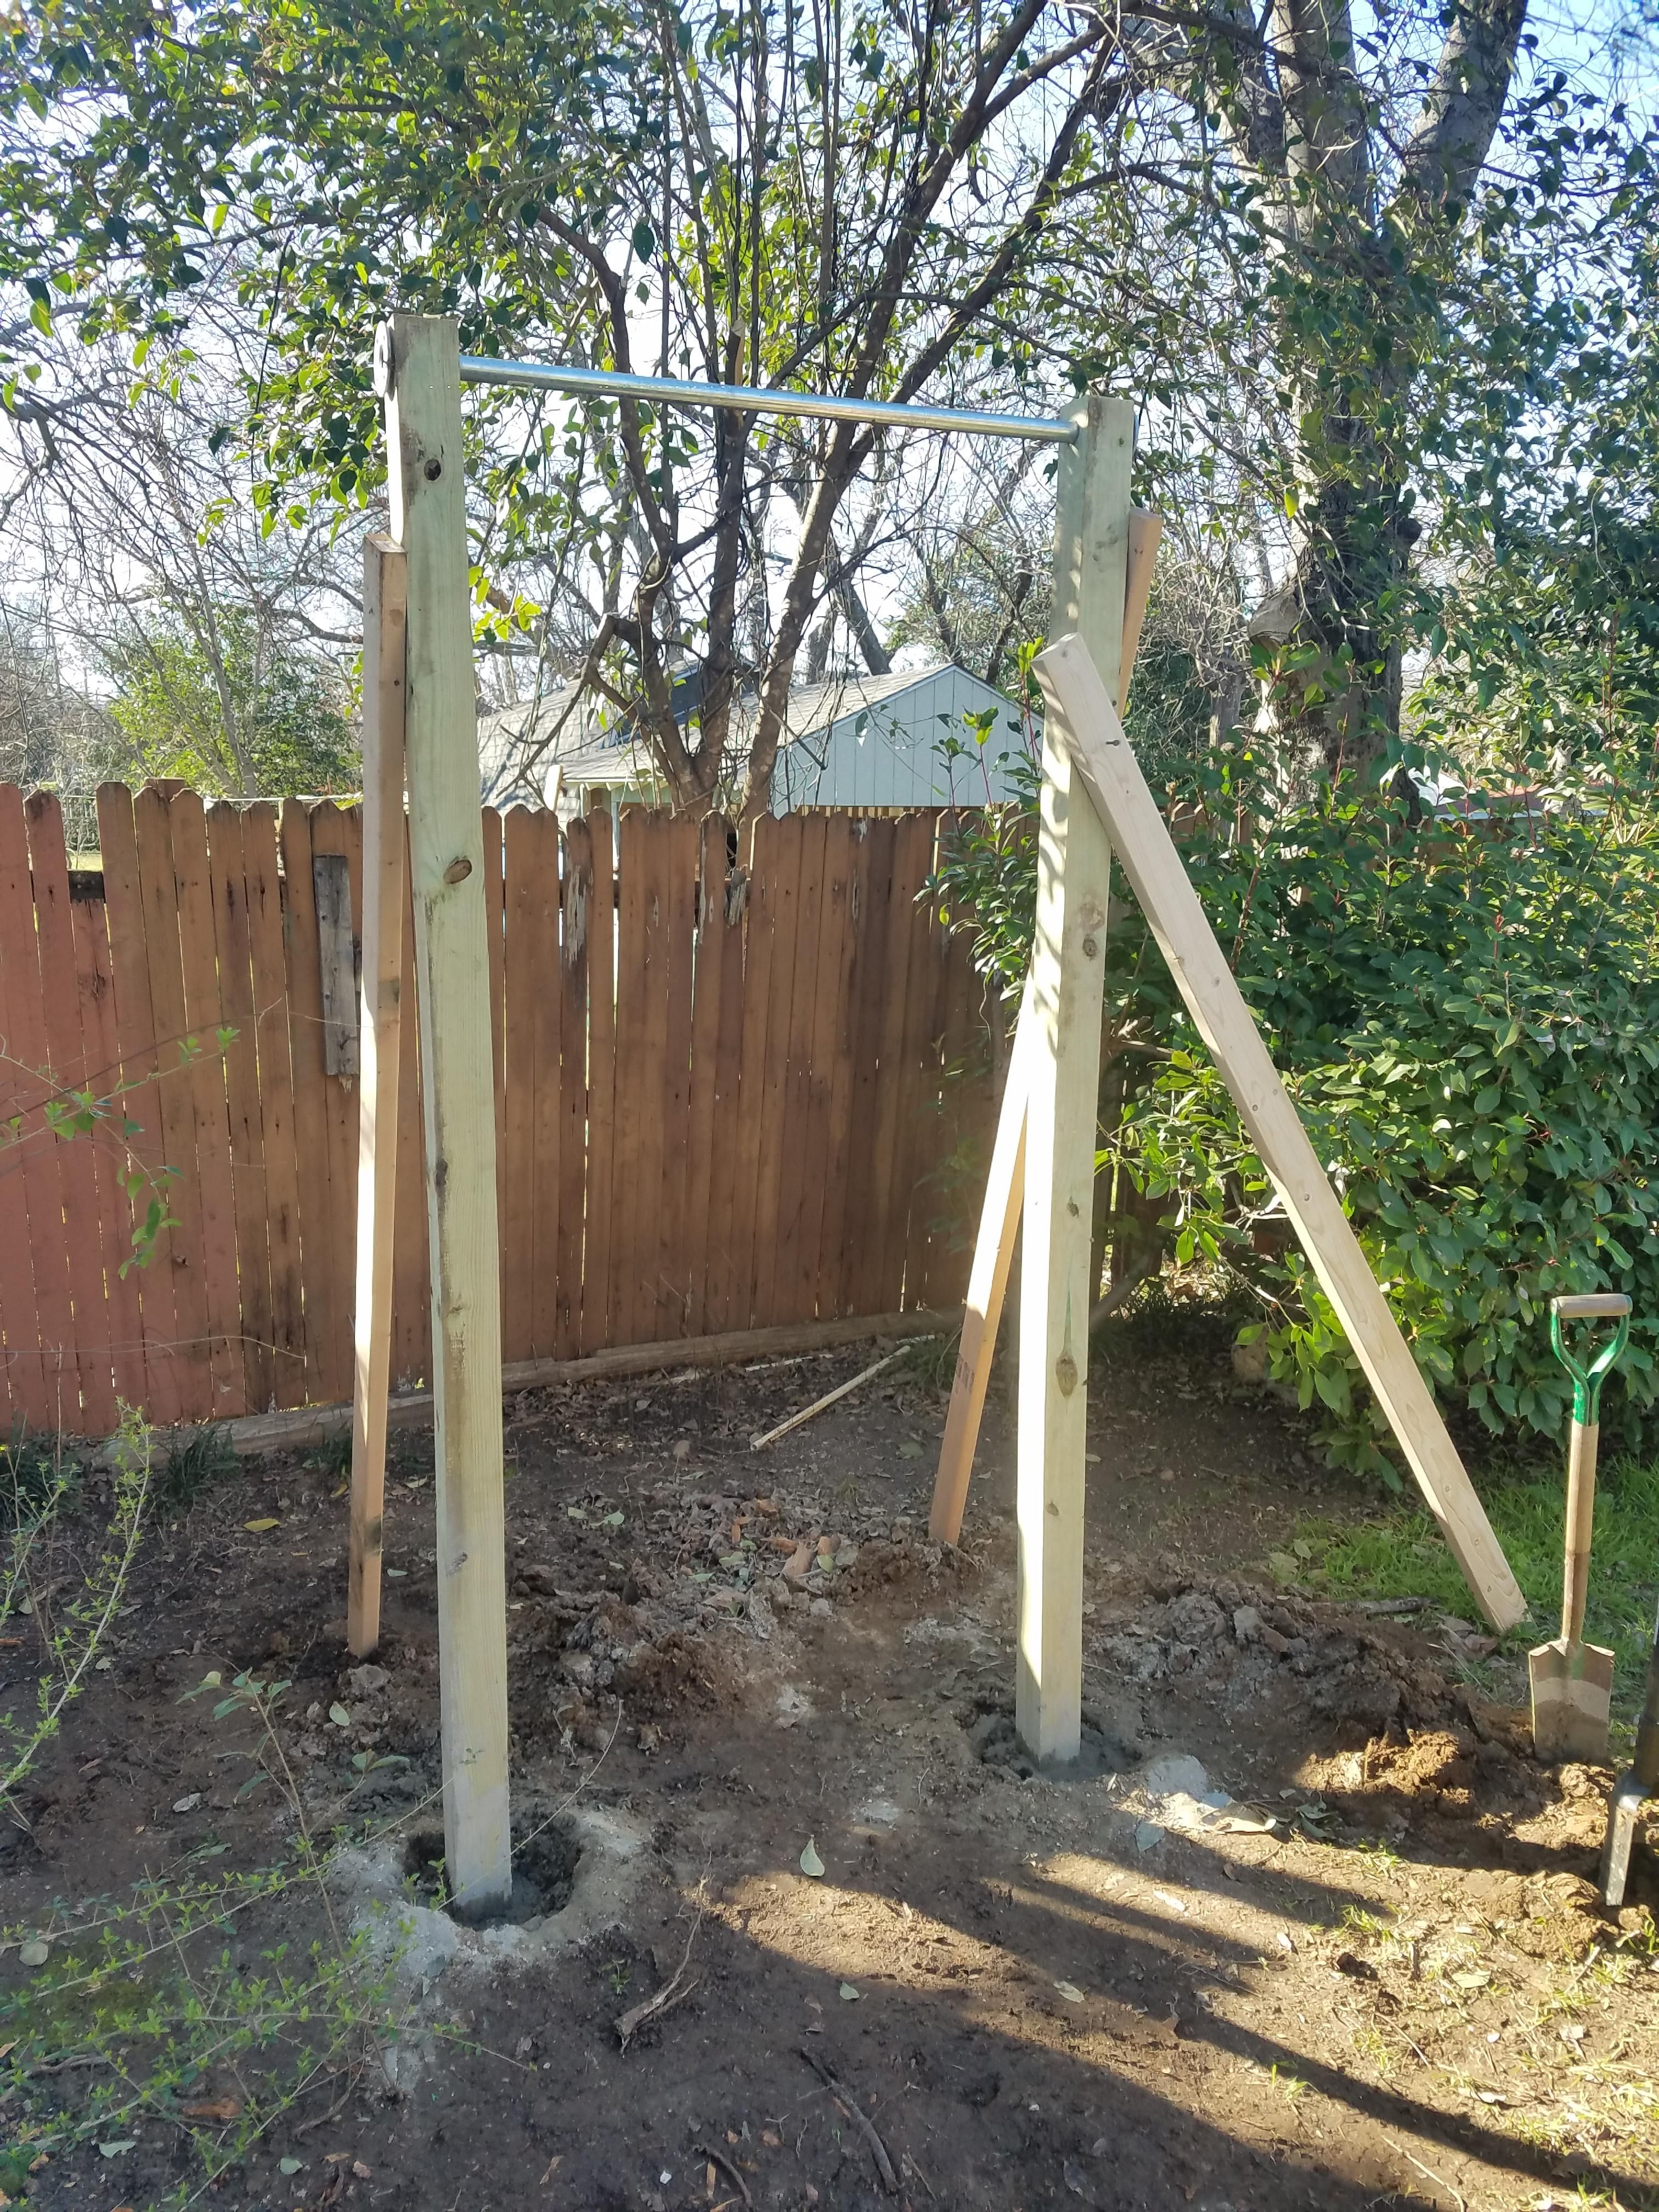 Backyard Pull Up Bar Ring Set Could Add A 15 Rope Climb Too Pretty Cool For A Couples Wod Outdoor Pull Up Bar No Equipment Workout Homemade Pull Up Bar